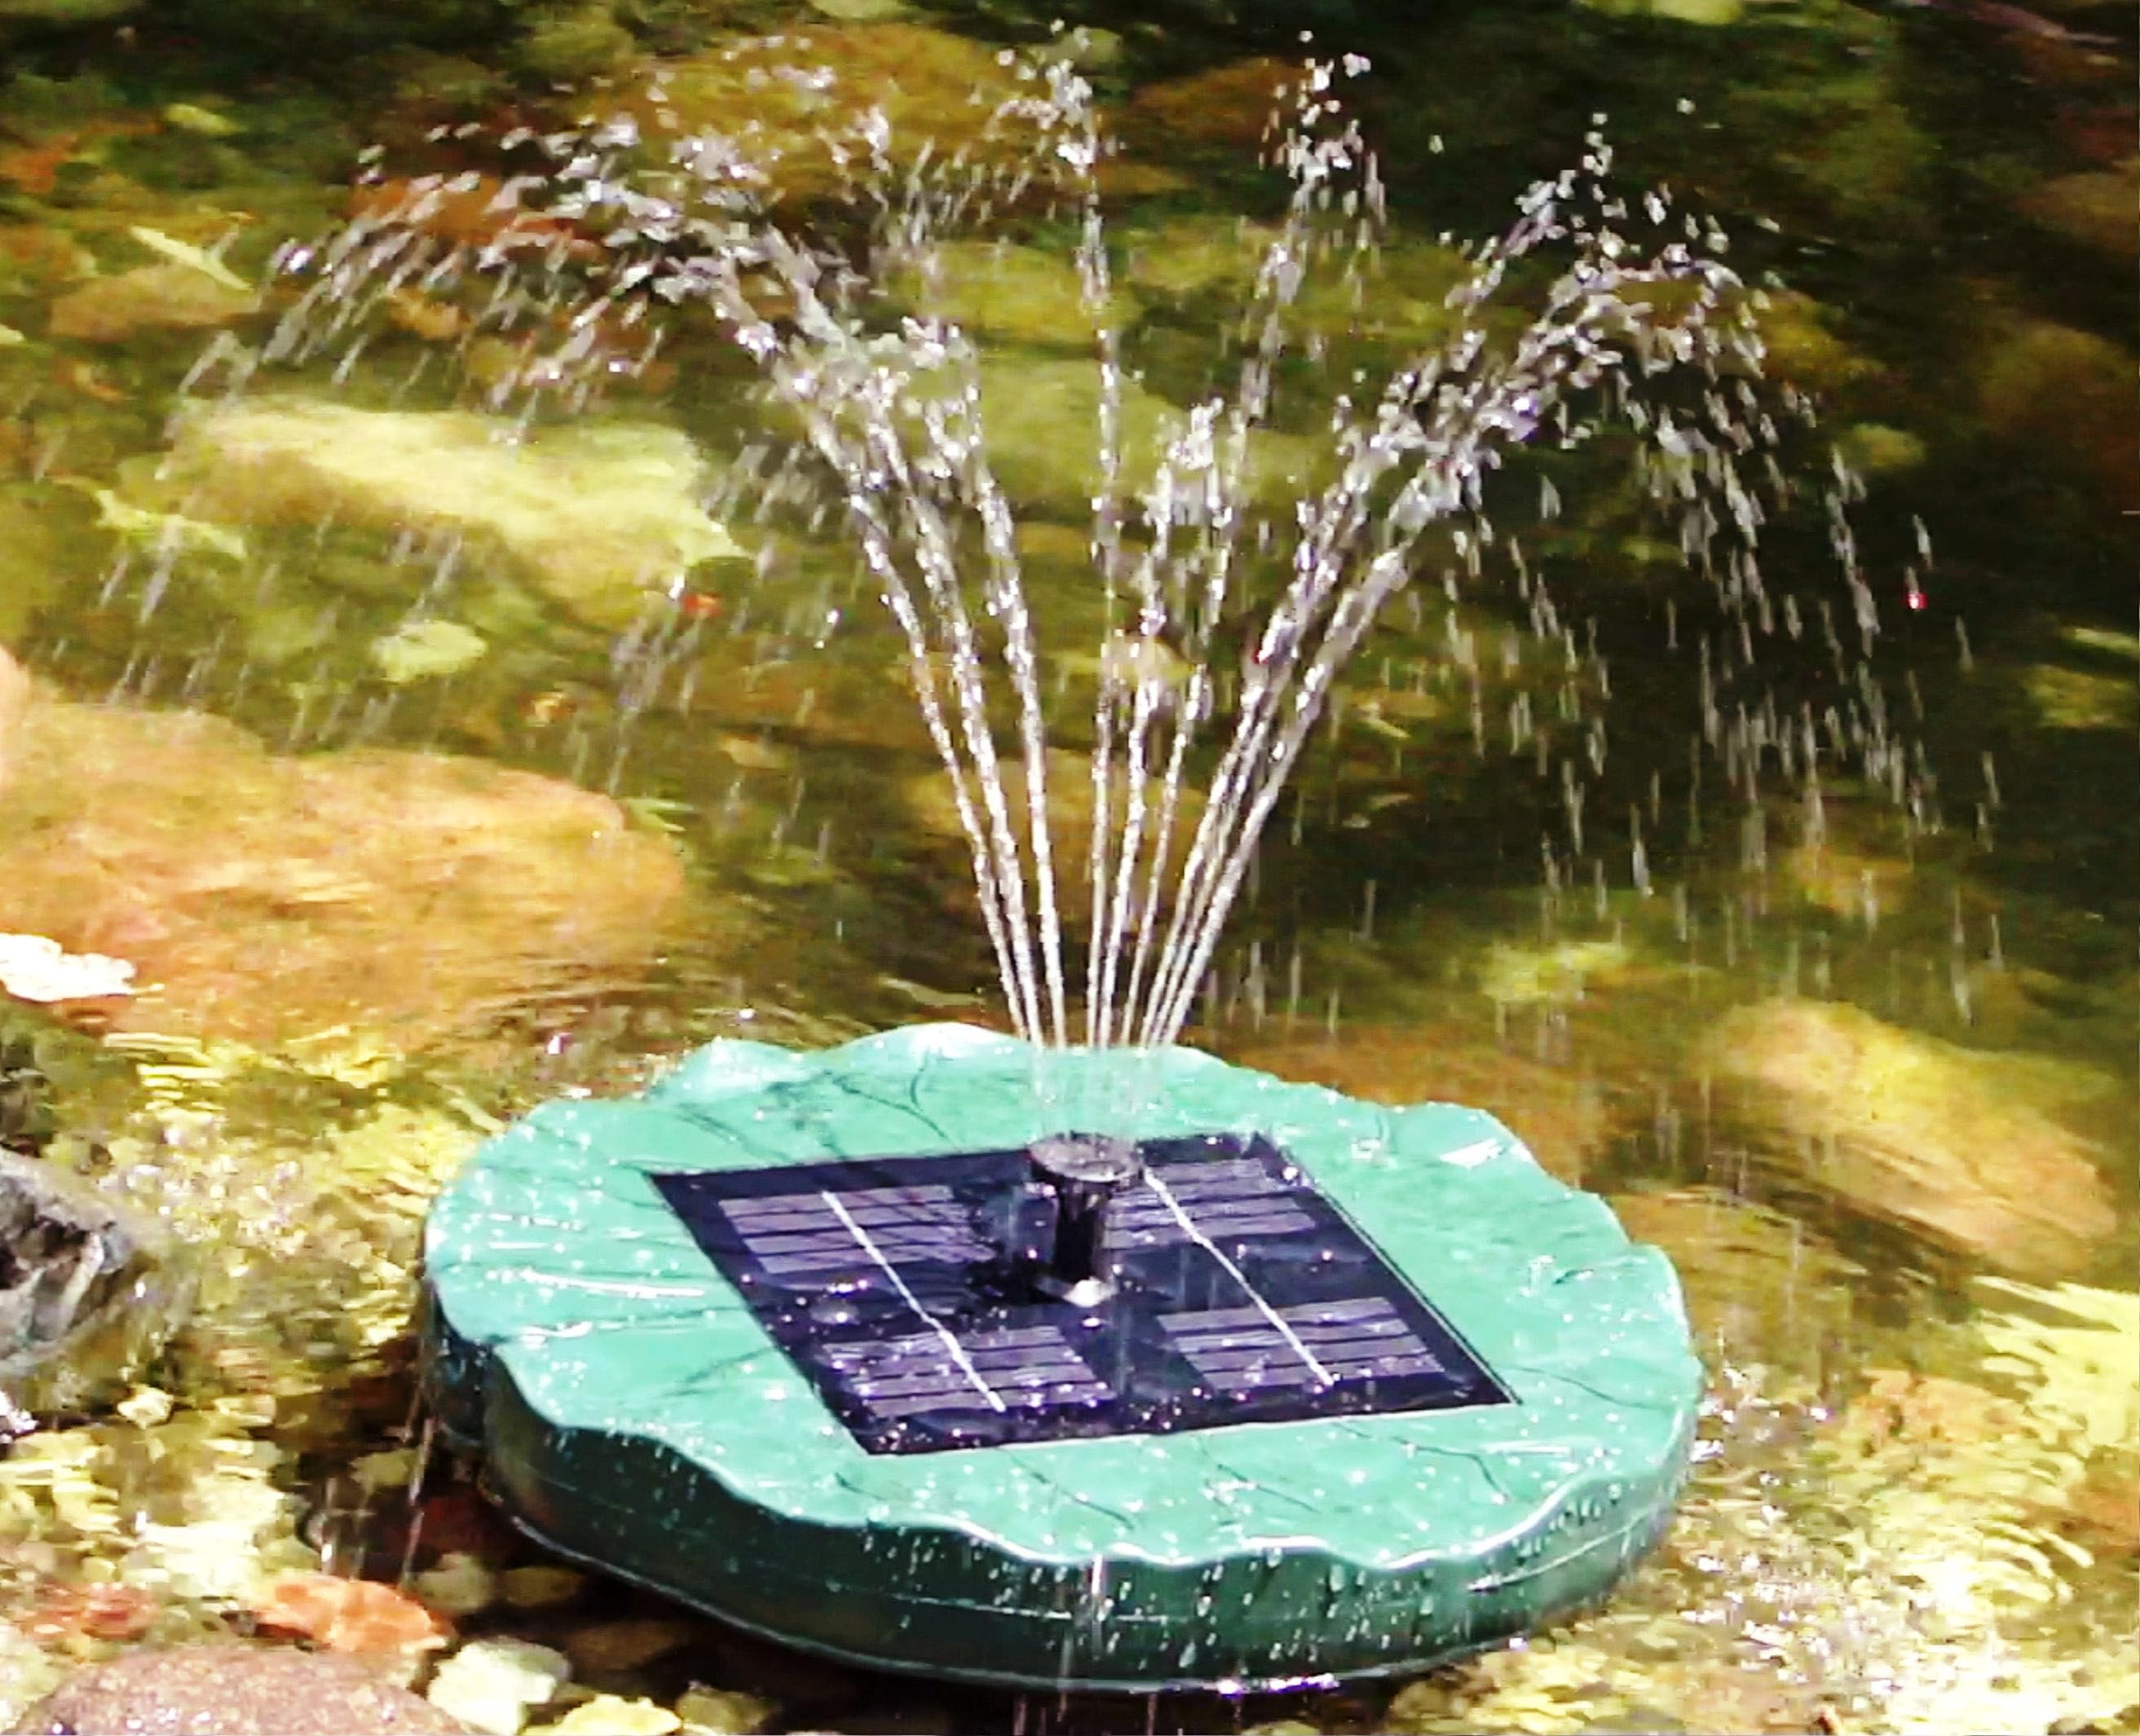 Solar powered pond fountain fountain design ideas for Solar water pump pond